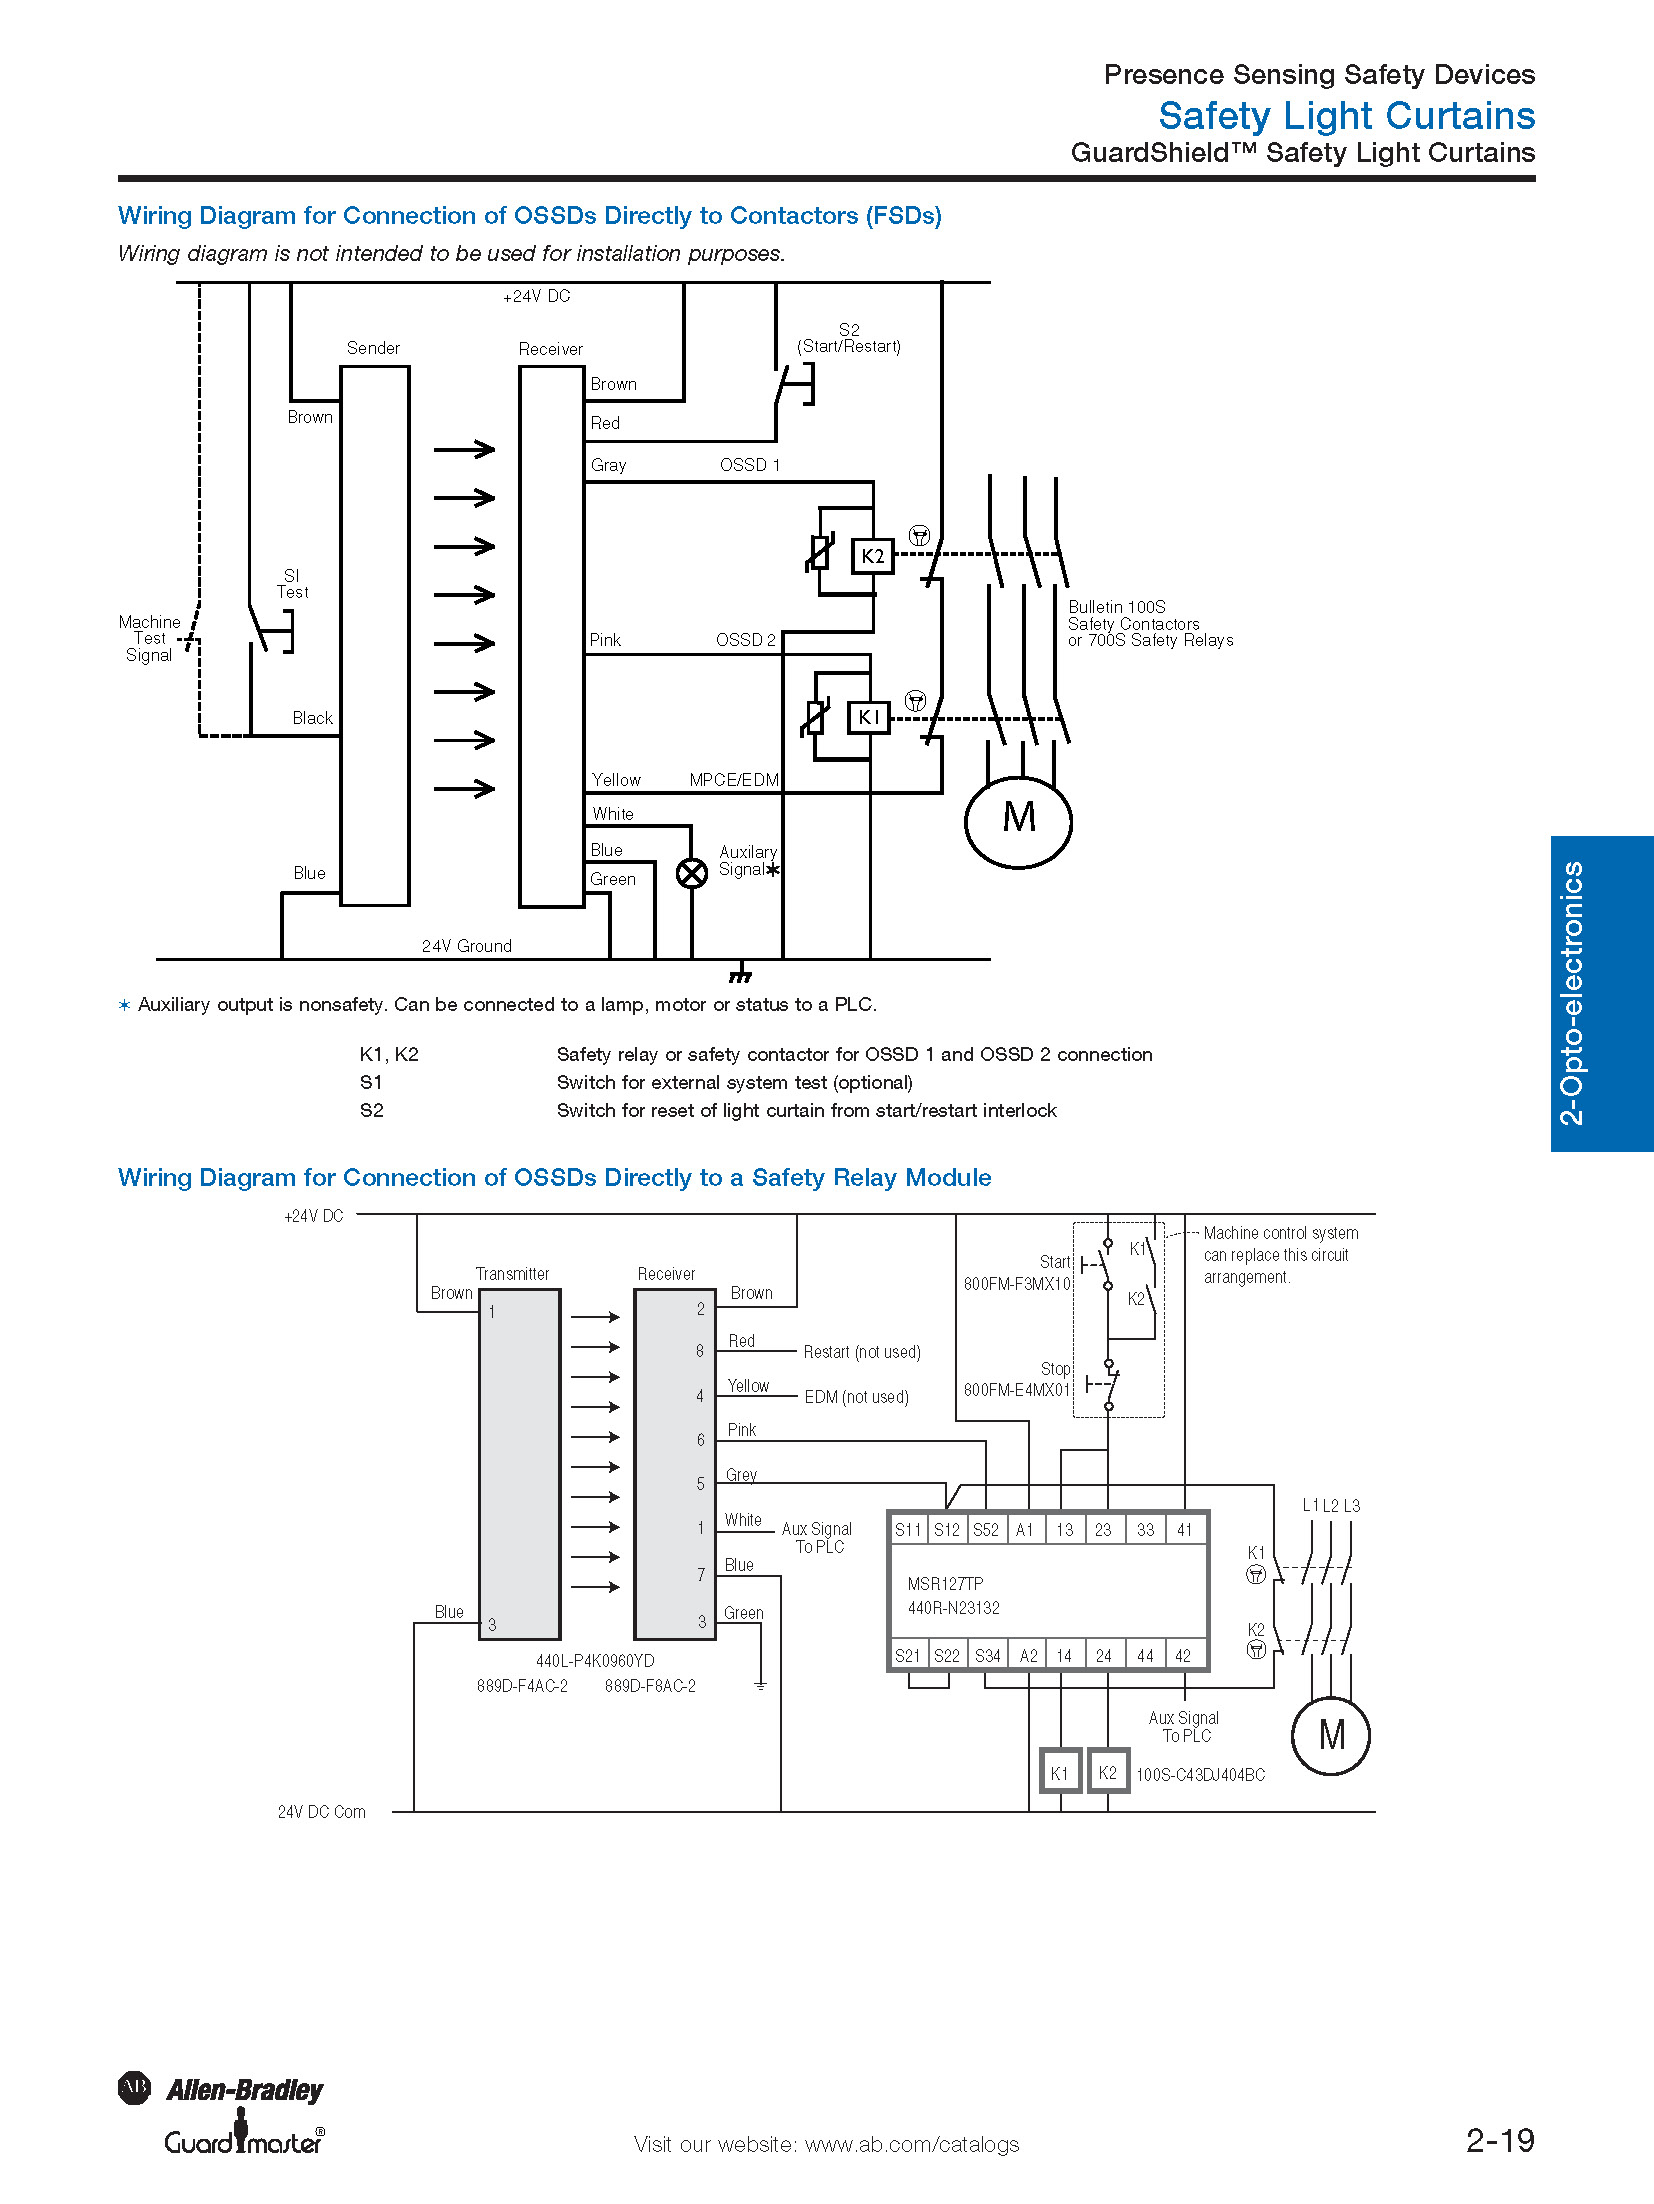 A-B 440L-C4J1600Yd Guardshield Safety Light Curtain, 1600Mm, 14Mm - Allen Bradley Safety Relay Wiring Diagram